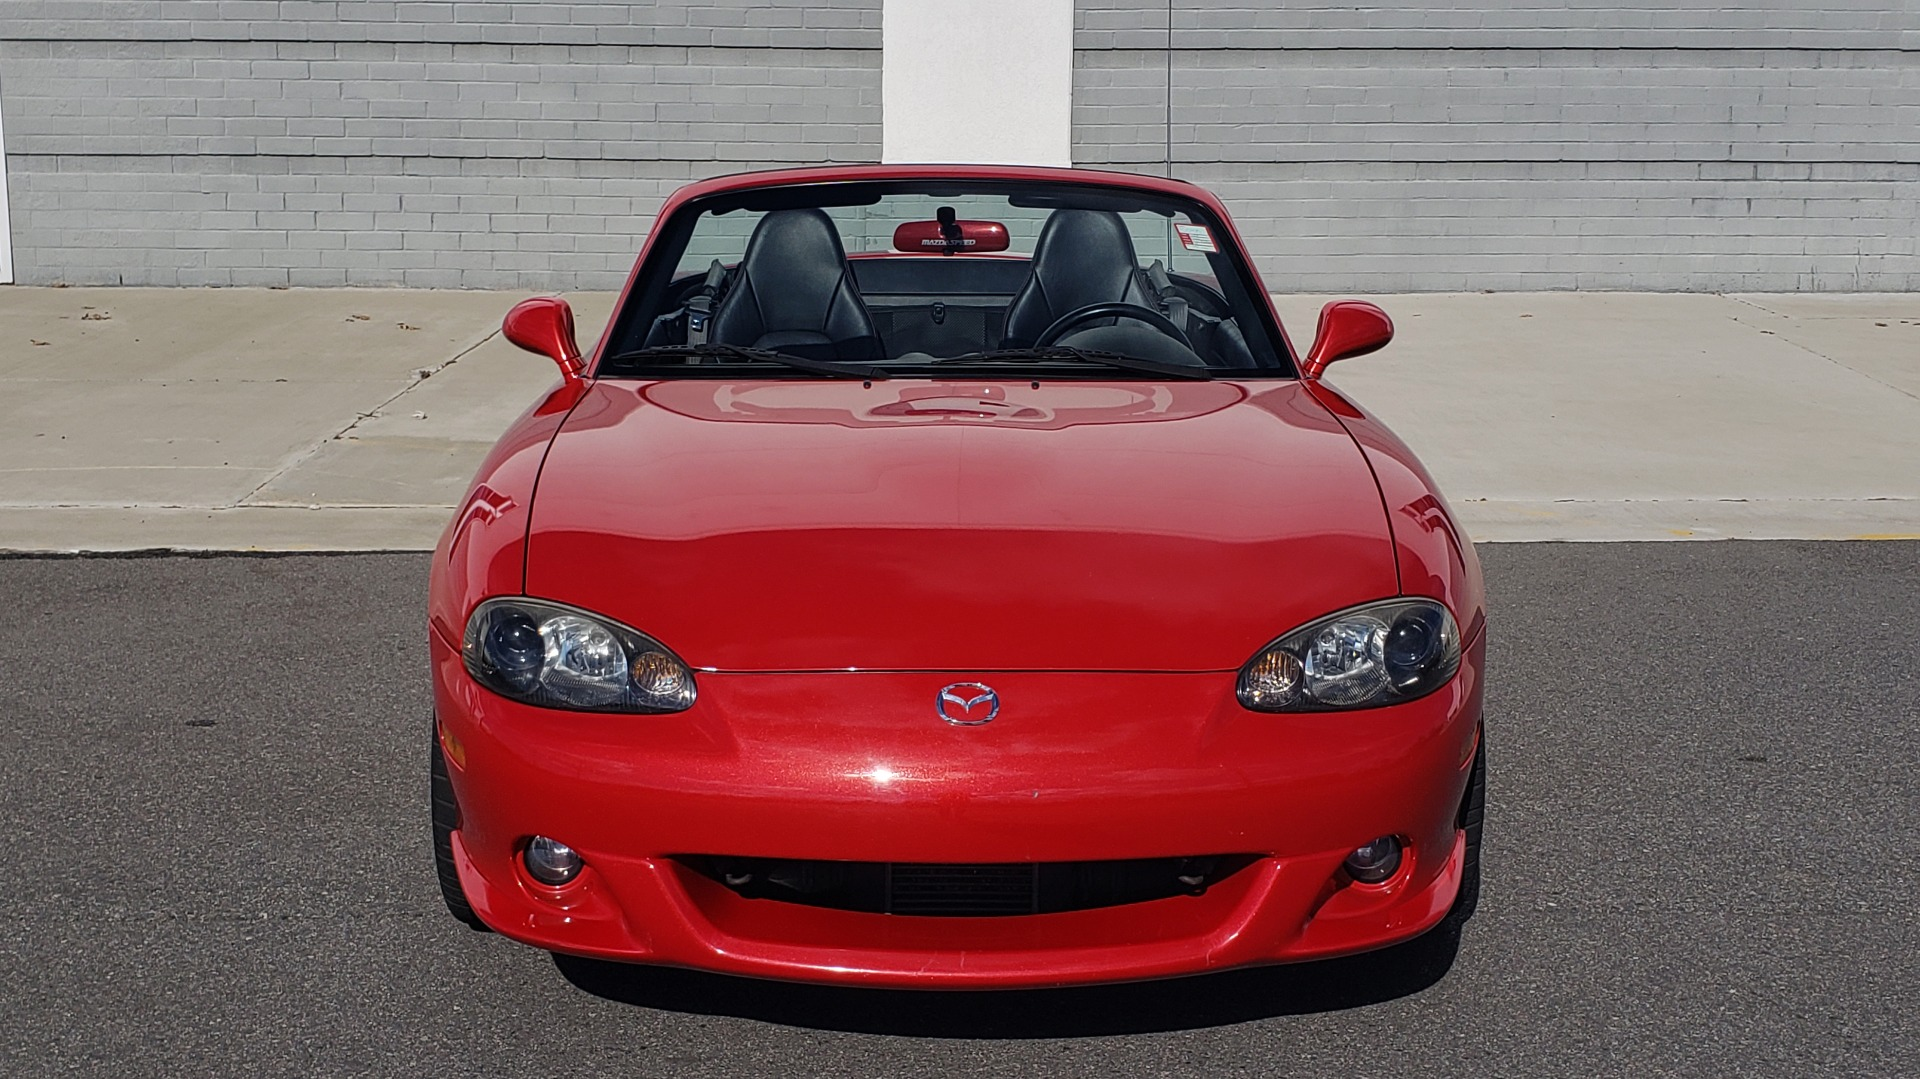 Used 2004 Mazda MX-5 MIATA 2DR CONVERTIBLE MAZDASPEED / GRAND TOURING PKG for sale Sold at Formula Imports in Charlotte NC 28227 61